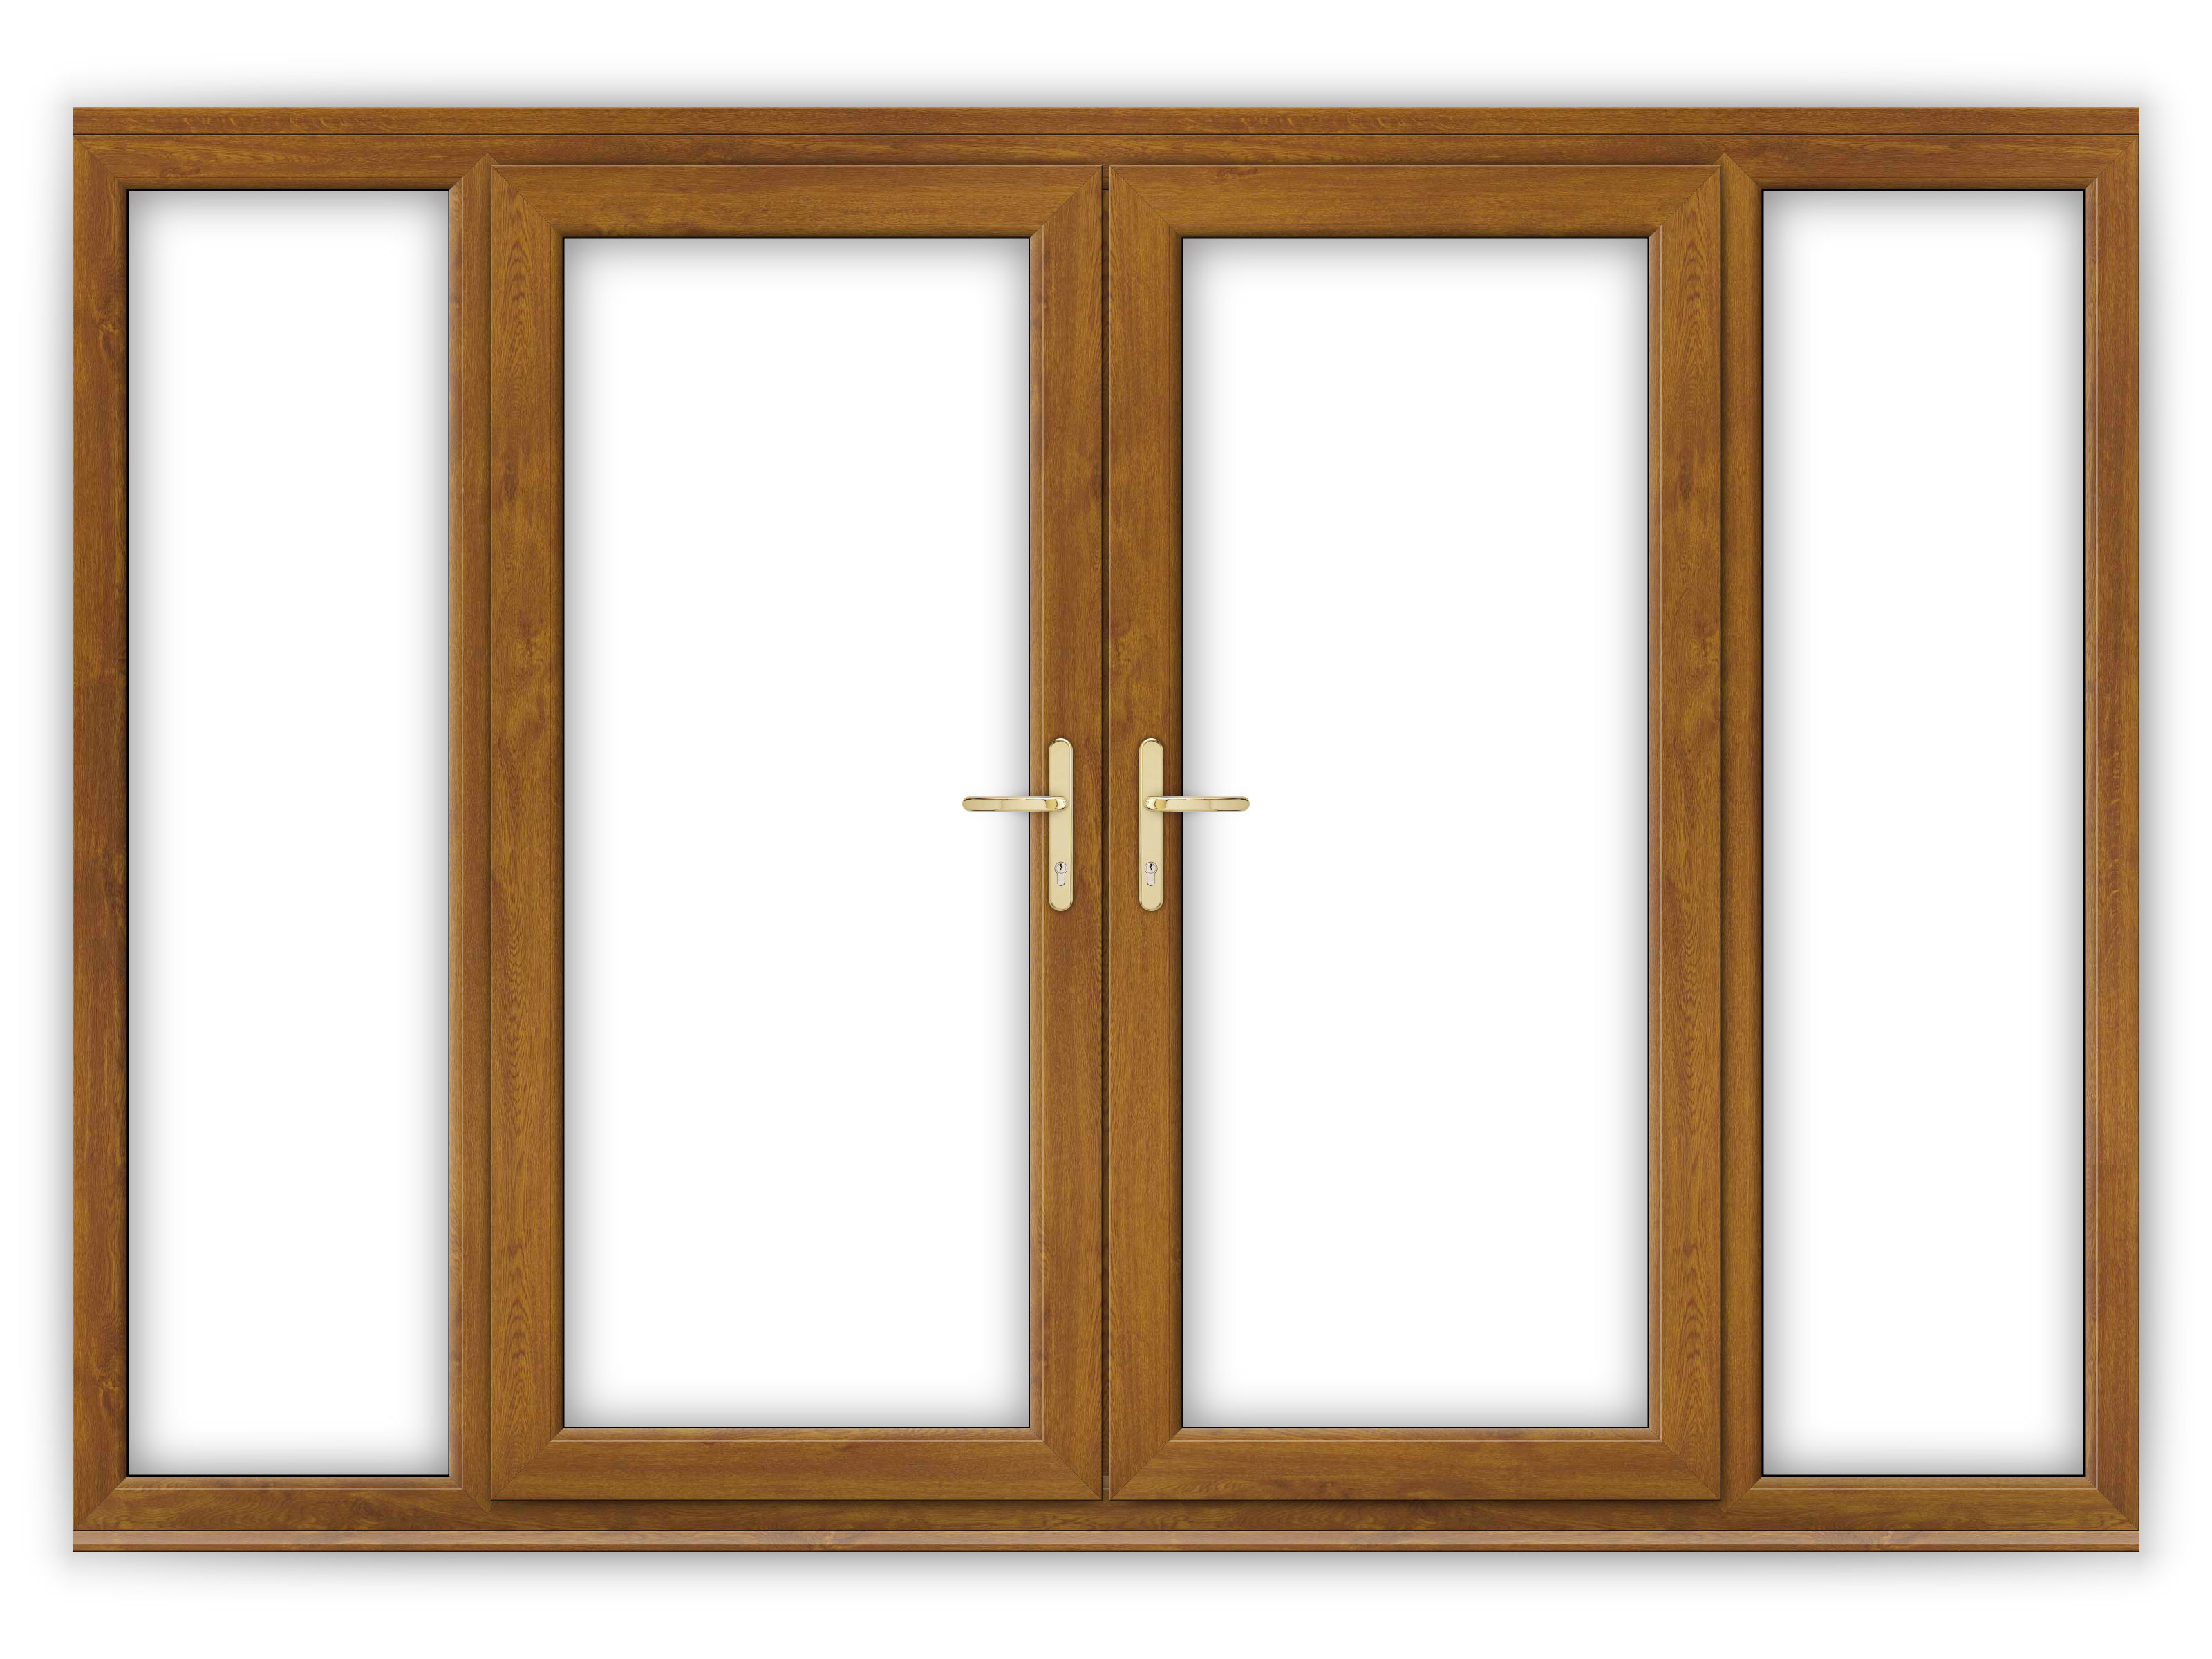 6 Ft Wide French Doors Of 6ft Golden Oak Upvc French Doors With Wide Side Panels